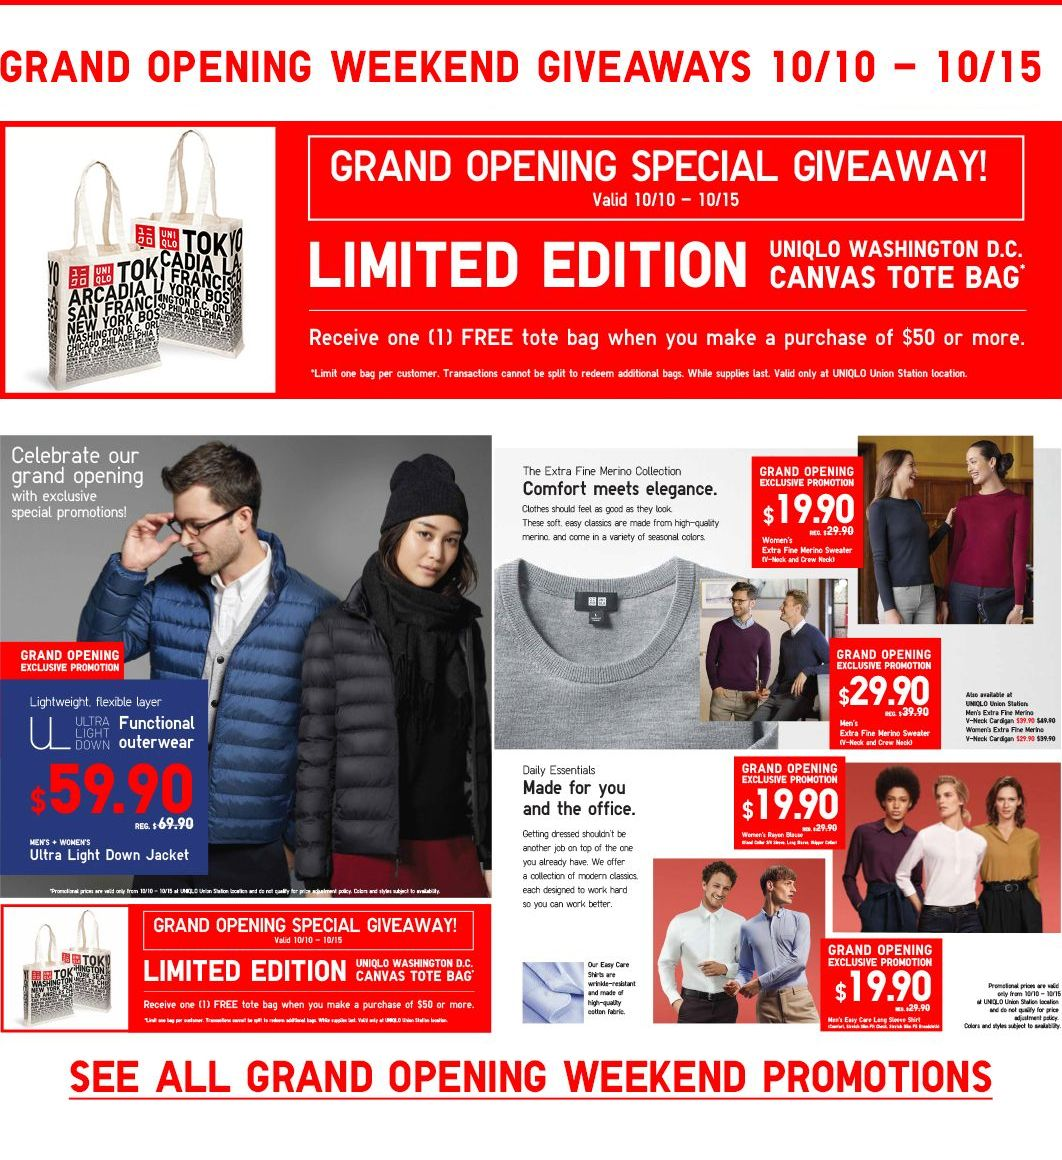 Union Station - Grand Opening Weekend Giveaways